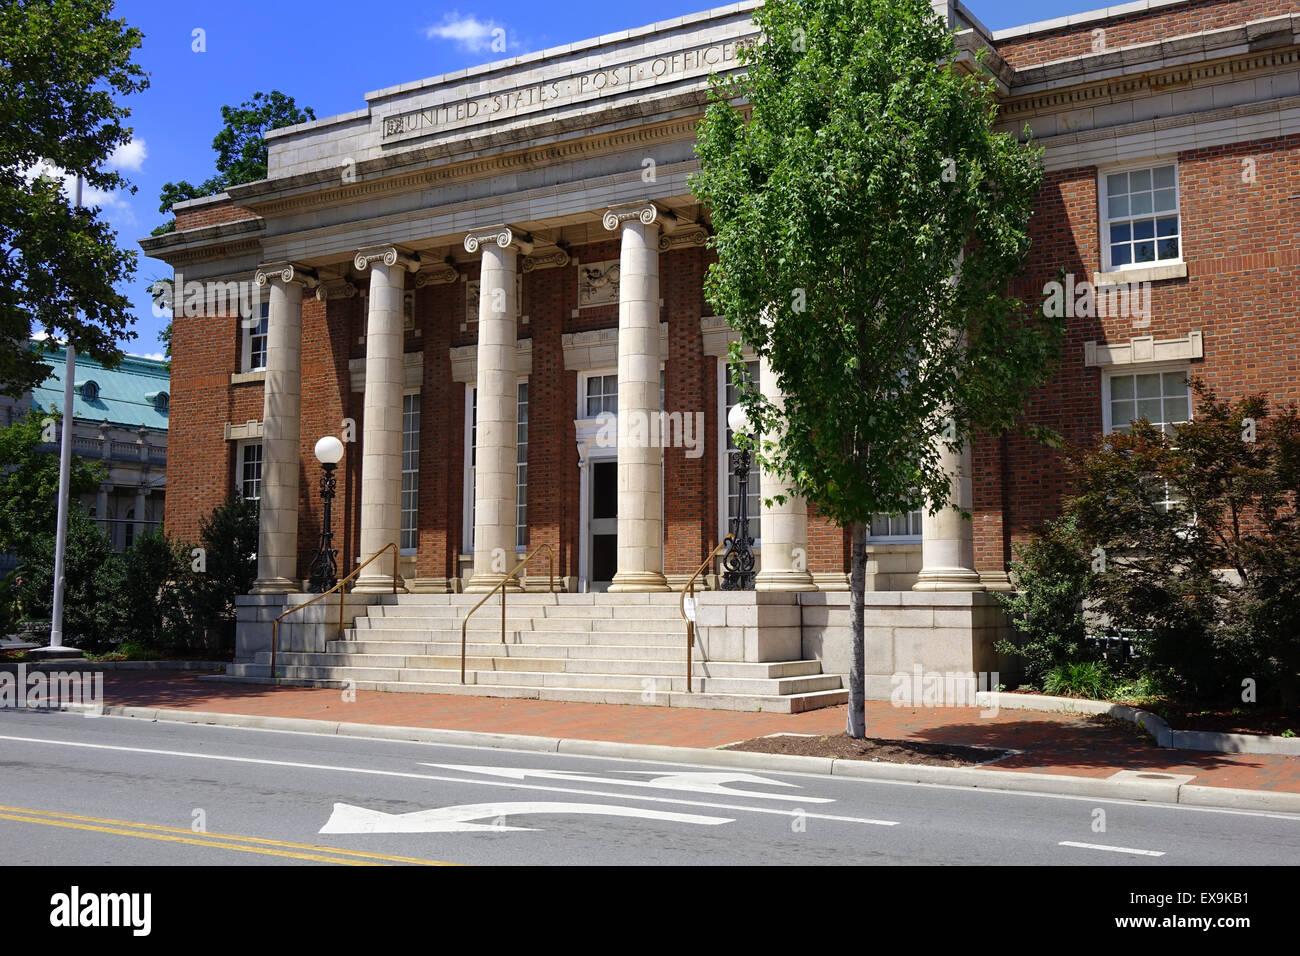 Old Town Post Office, now used as an office building, Old Town, Winchester, Virginia - Stock Image